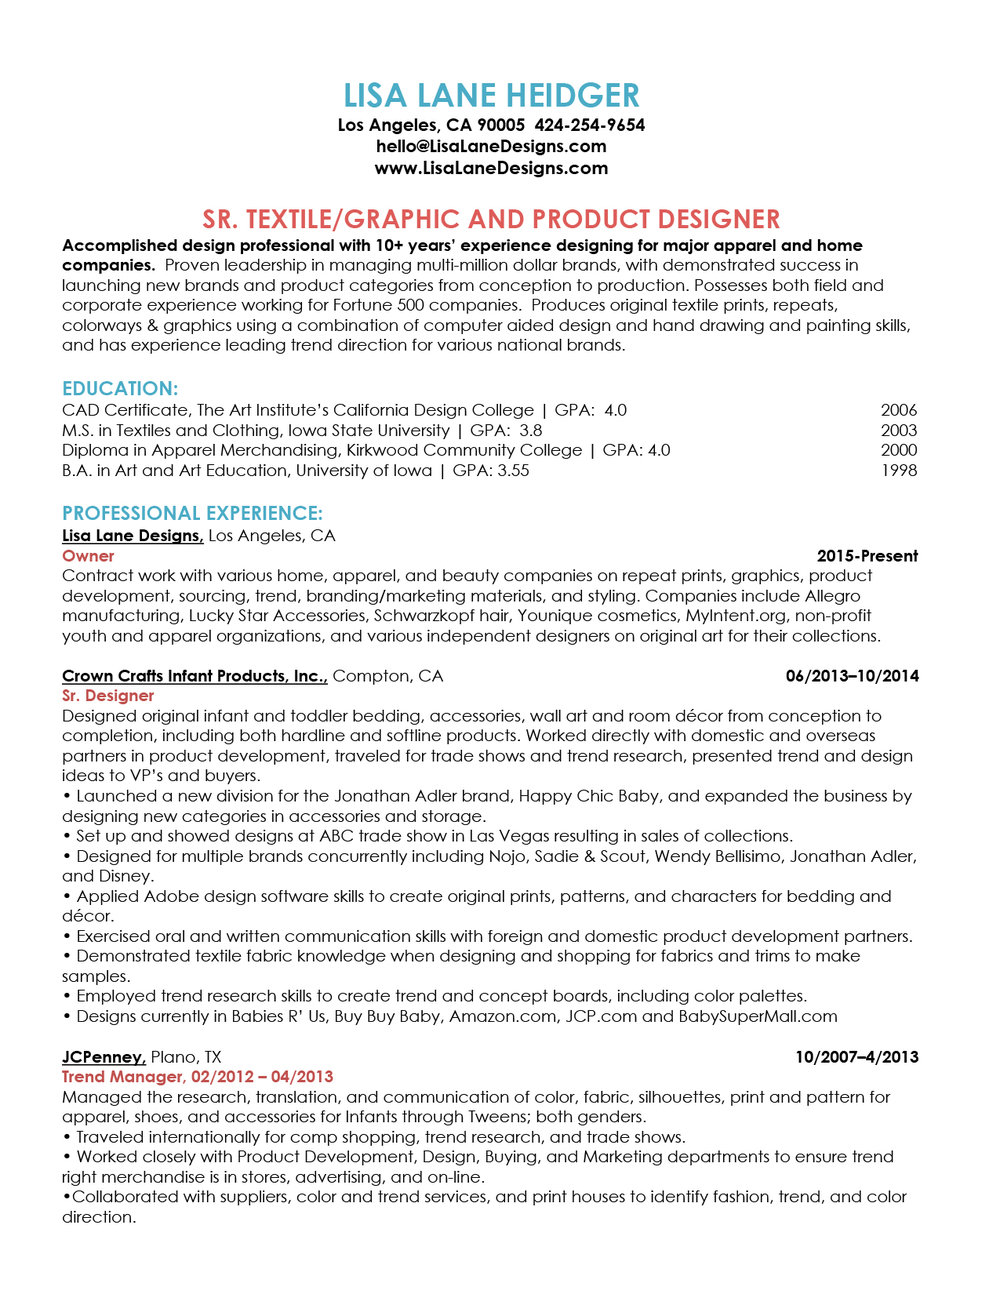 Lisa Lane Heidger website resume 2016-pg1.jpg